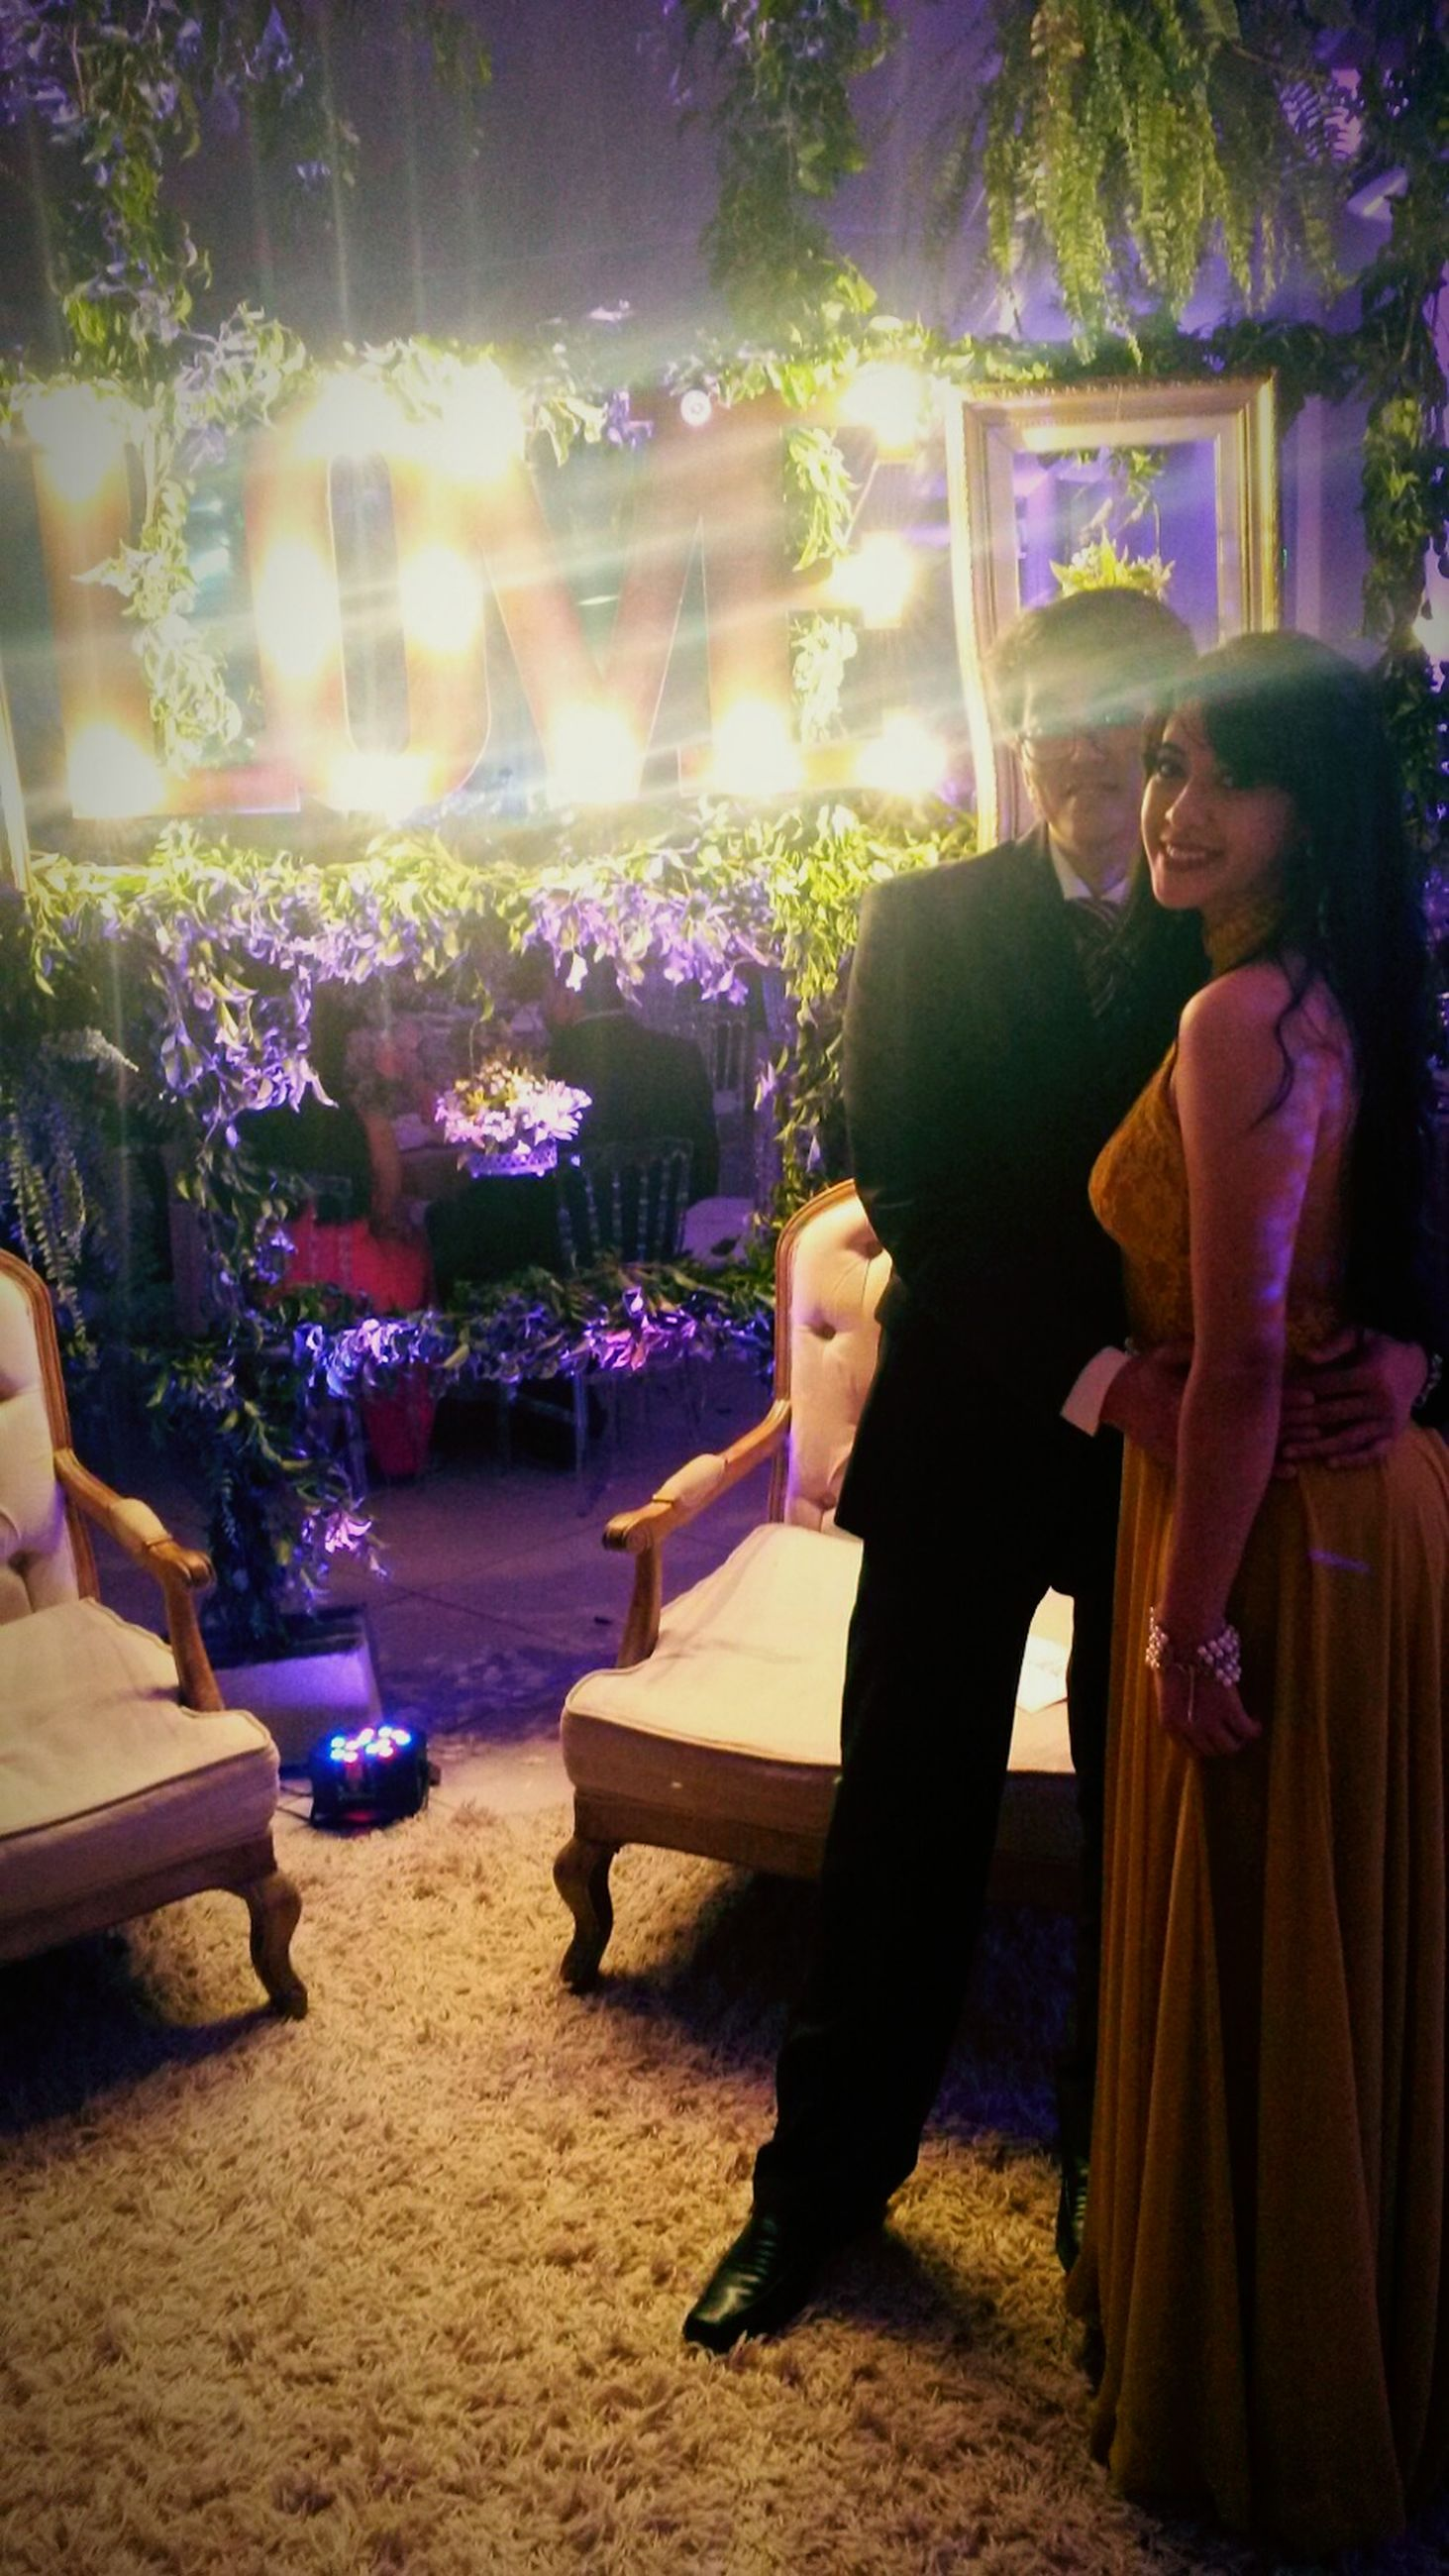 lifestyles, sitting, leisure activity, young adult, casual clothing, full length, person, young women, night, tree, relaxation, sunlight, illuminated, standing, chair, table, park - man made space